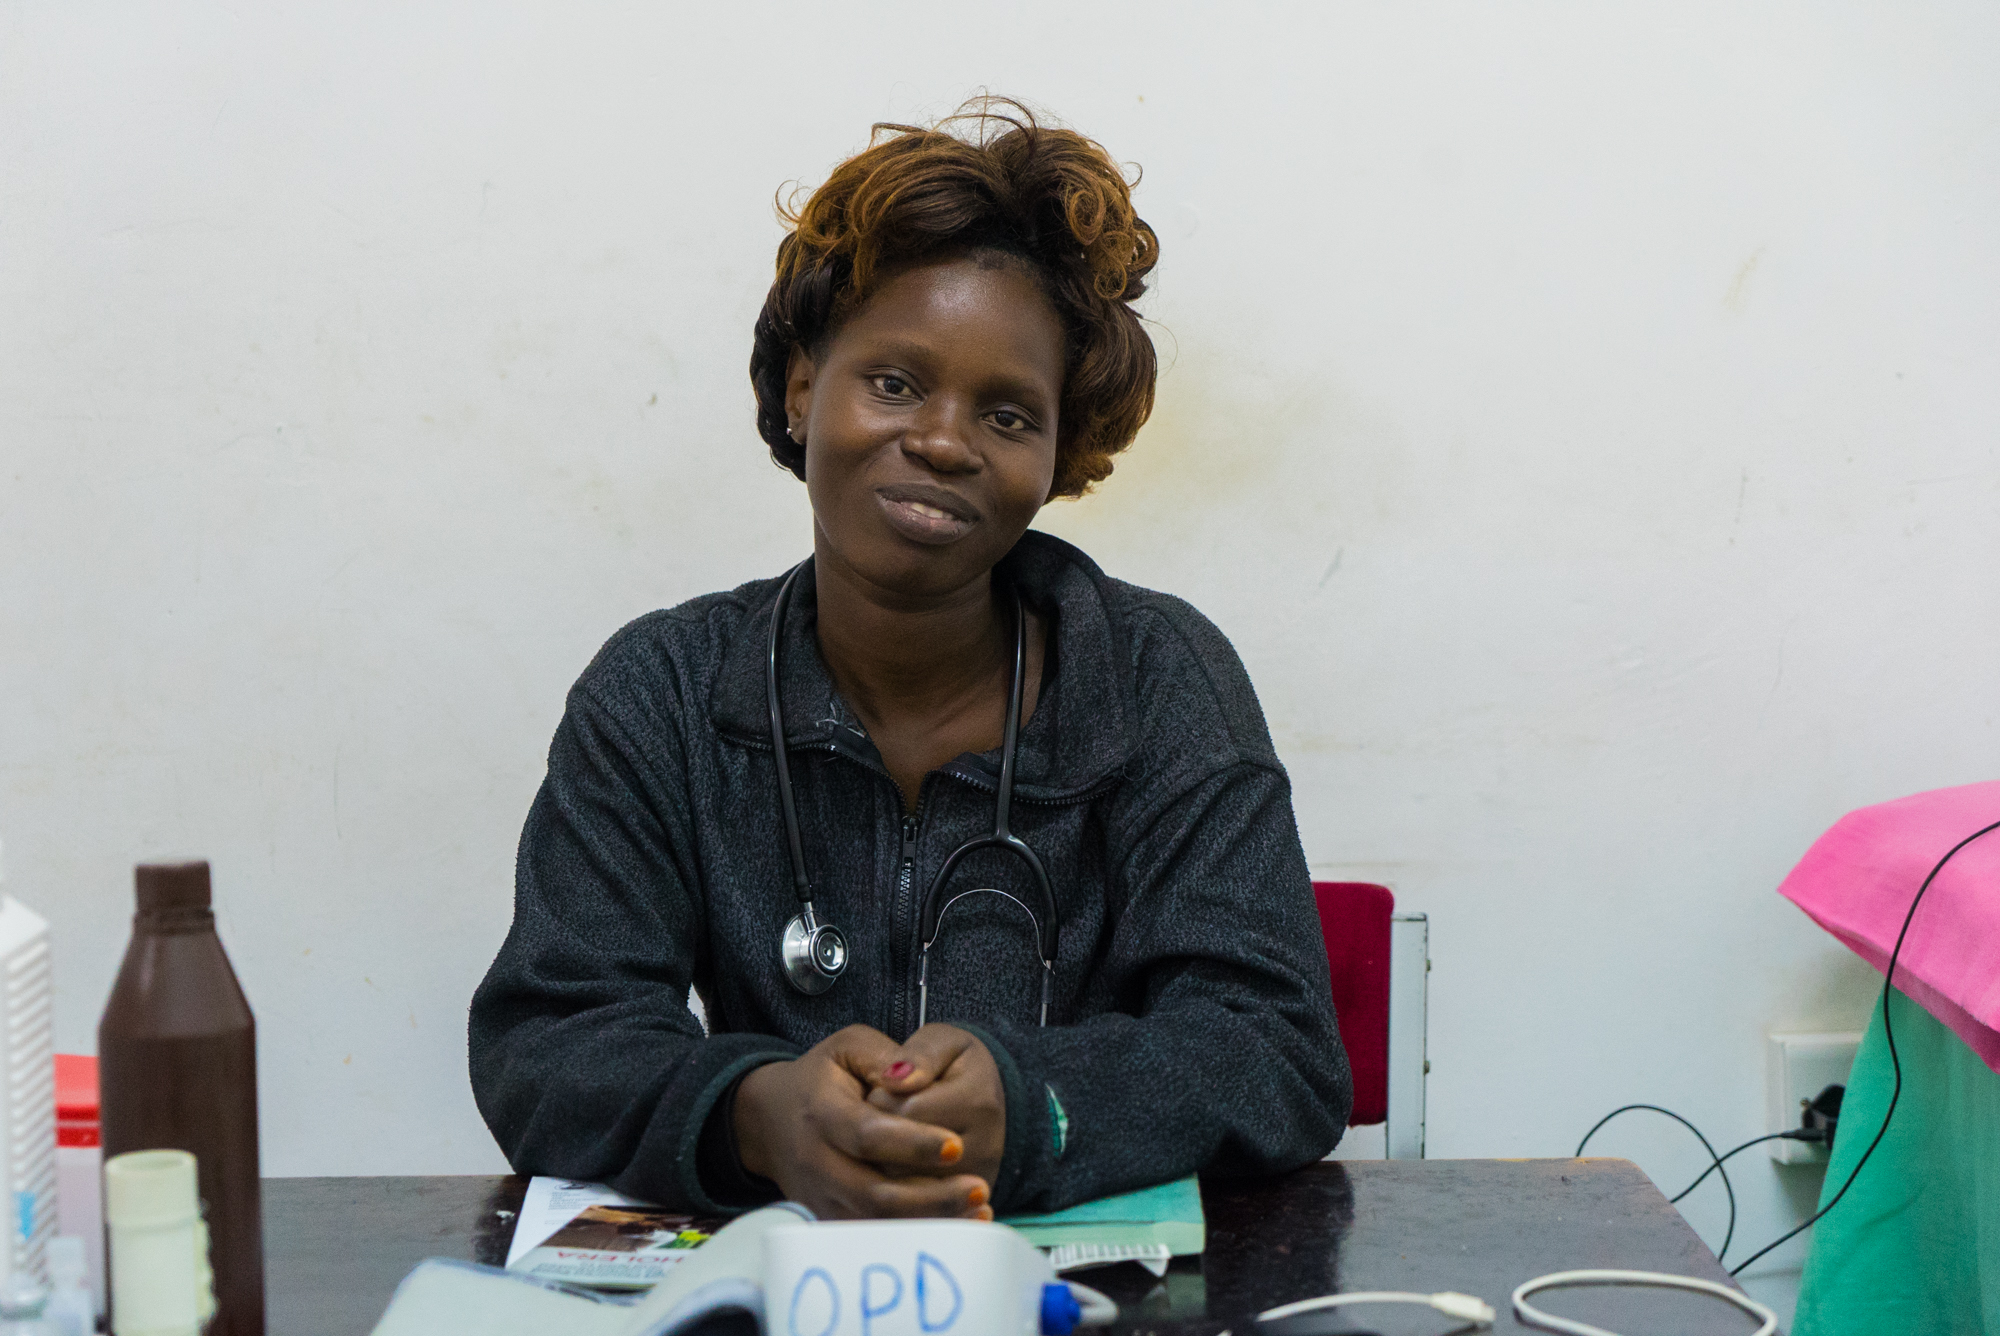 Highlights from our interview with Brenda, a clinician at Community Hospital Outpatients Surgery in Kisumu, Kenya